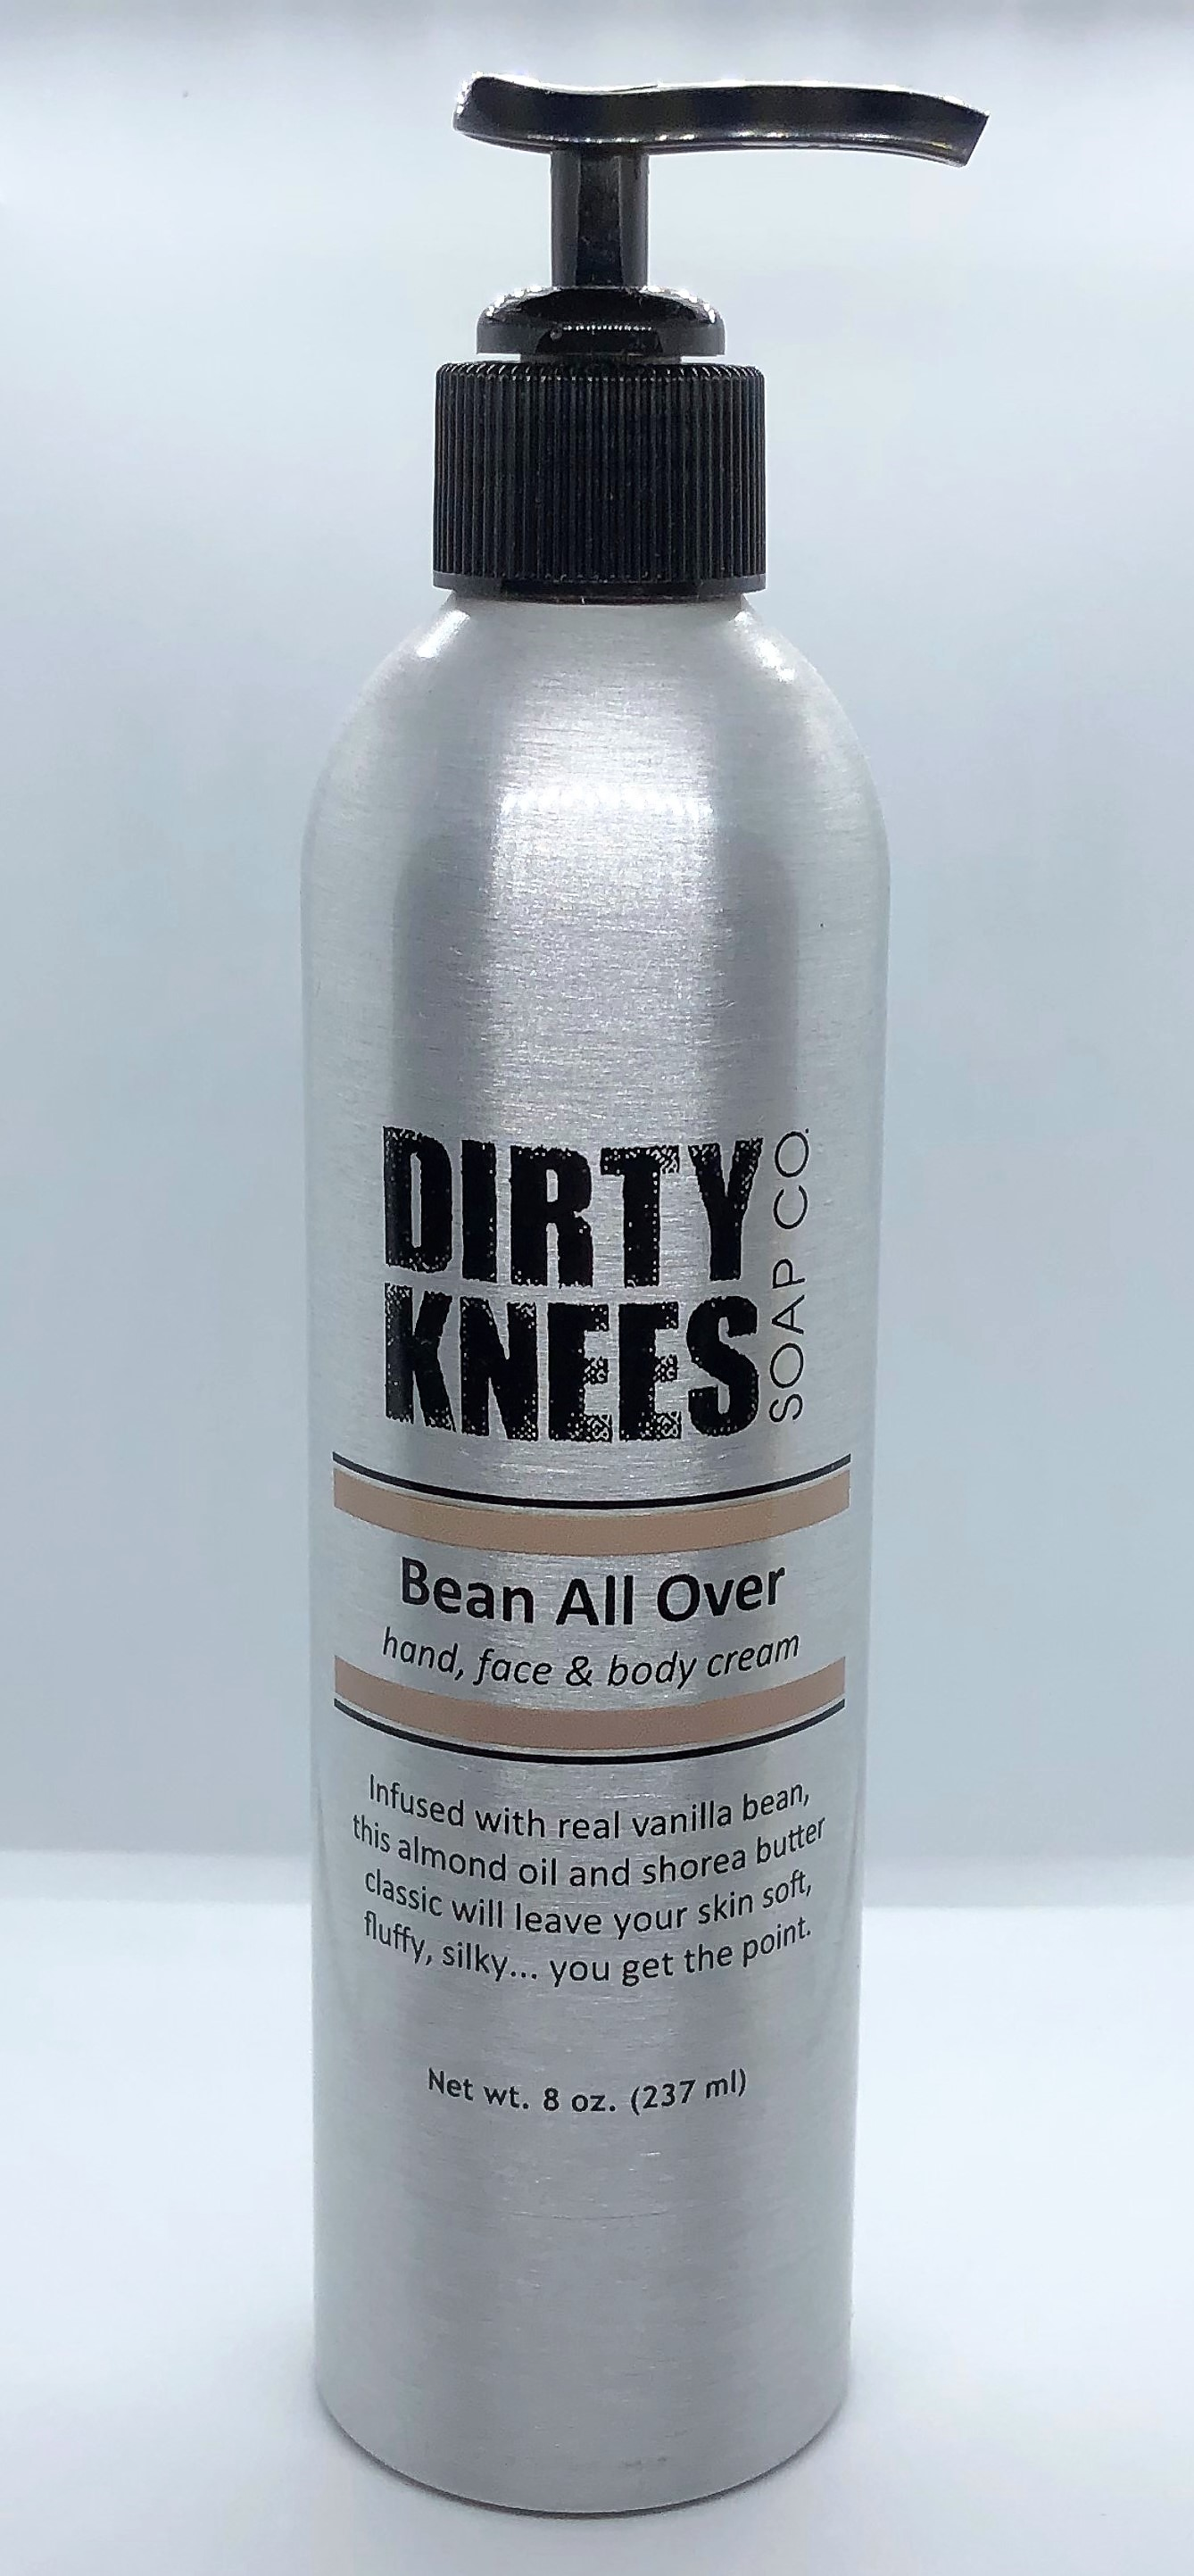 Bean All Over - Hand, Face, & Body Cream - Dirty Knees Soap - 8oz - Sale/Final Cut